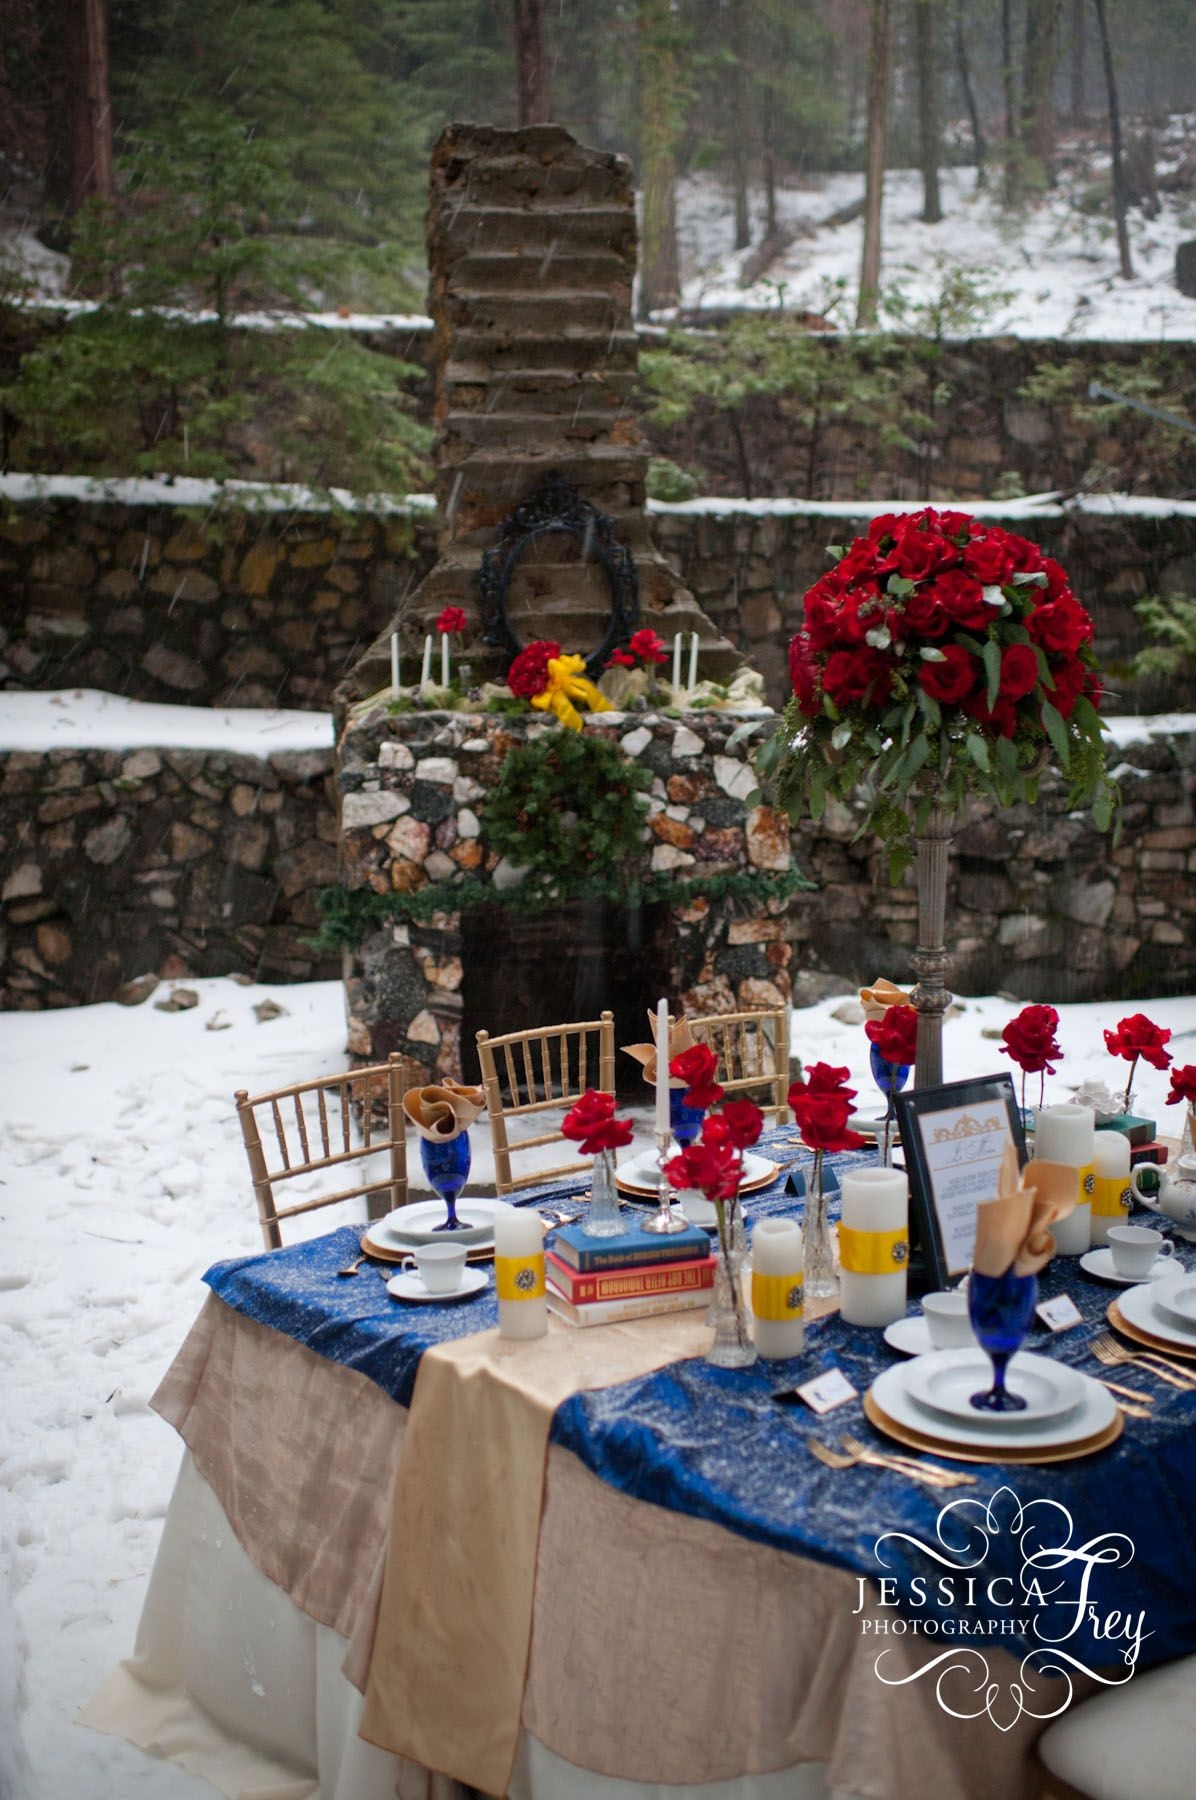 winter wonderland wedding table ideas%0A Beauty and the Beast Weddings lifestoughimtougher   u   c saltlakecitybride   u   c  Wedding Gowns Custom Couture Bridal For the bride who wants to be JUST LIKE  Belle